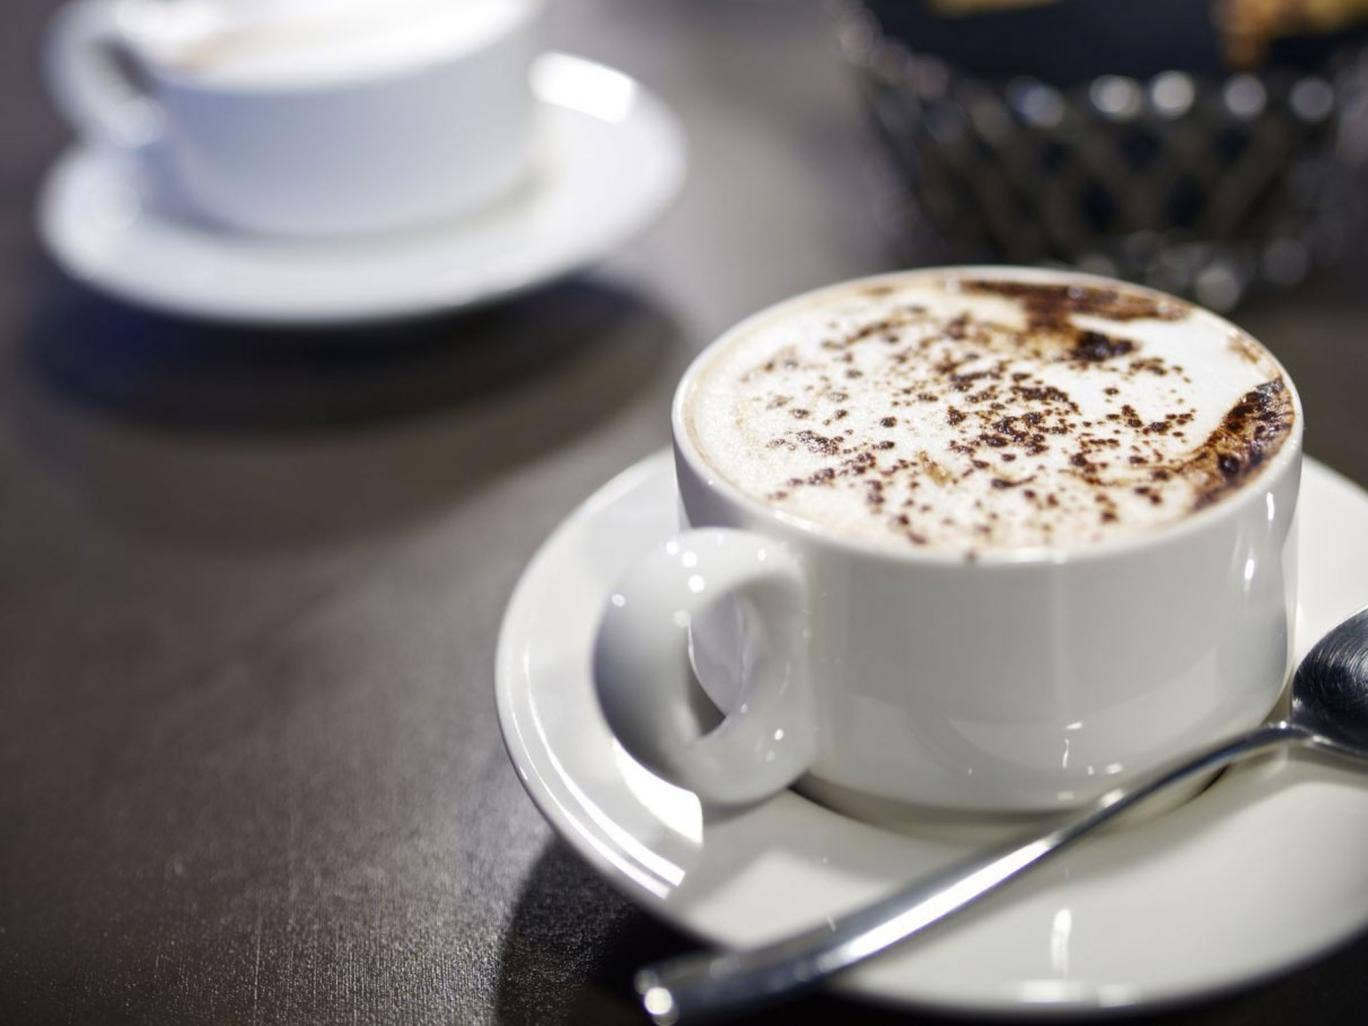 A new business - like a coffee shop - doesn't need to register for VAT initially